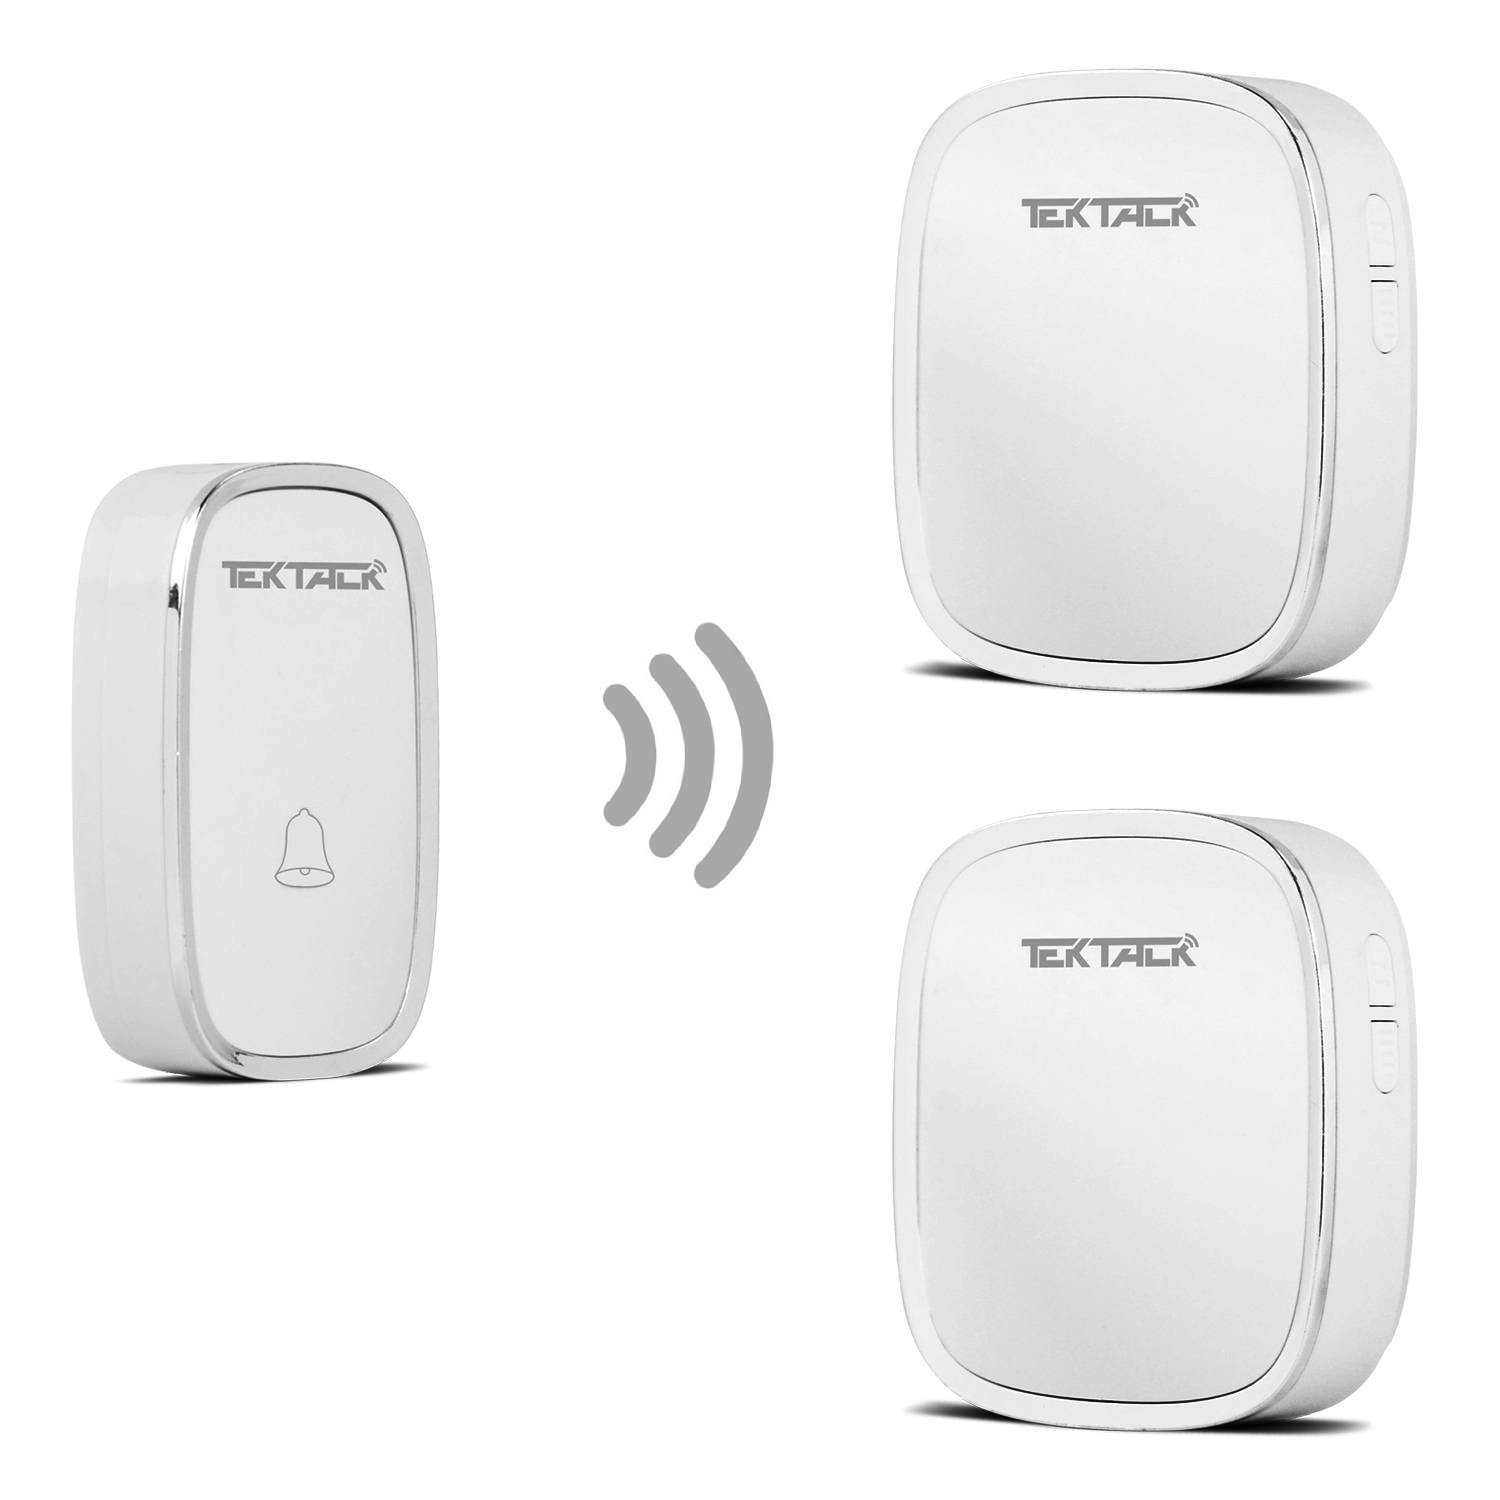 Tektalk Wireless Metallic Edge Decored Door Bell Chime and Push Button with 36 Chimes Volume Levels White 1 Remote Button and 2 Plug in Receivers with LED Indicator